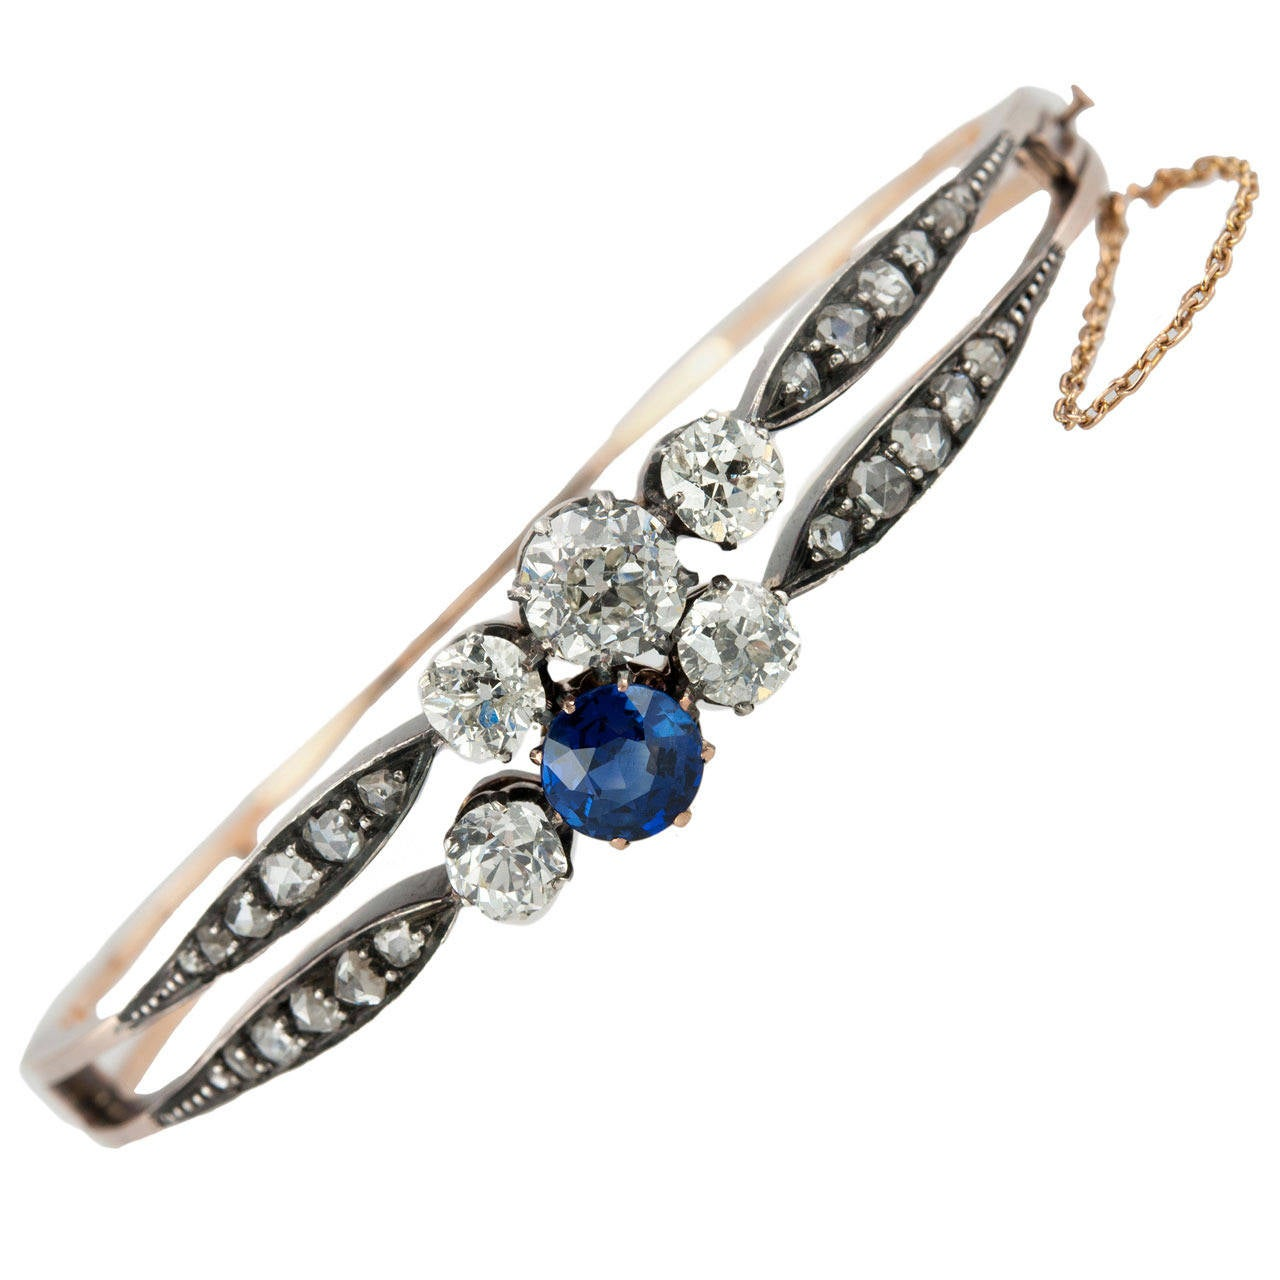 Victorian Diamond and GIA Cert Natural Sapphire Bangle Bracelet